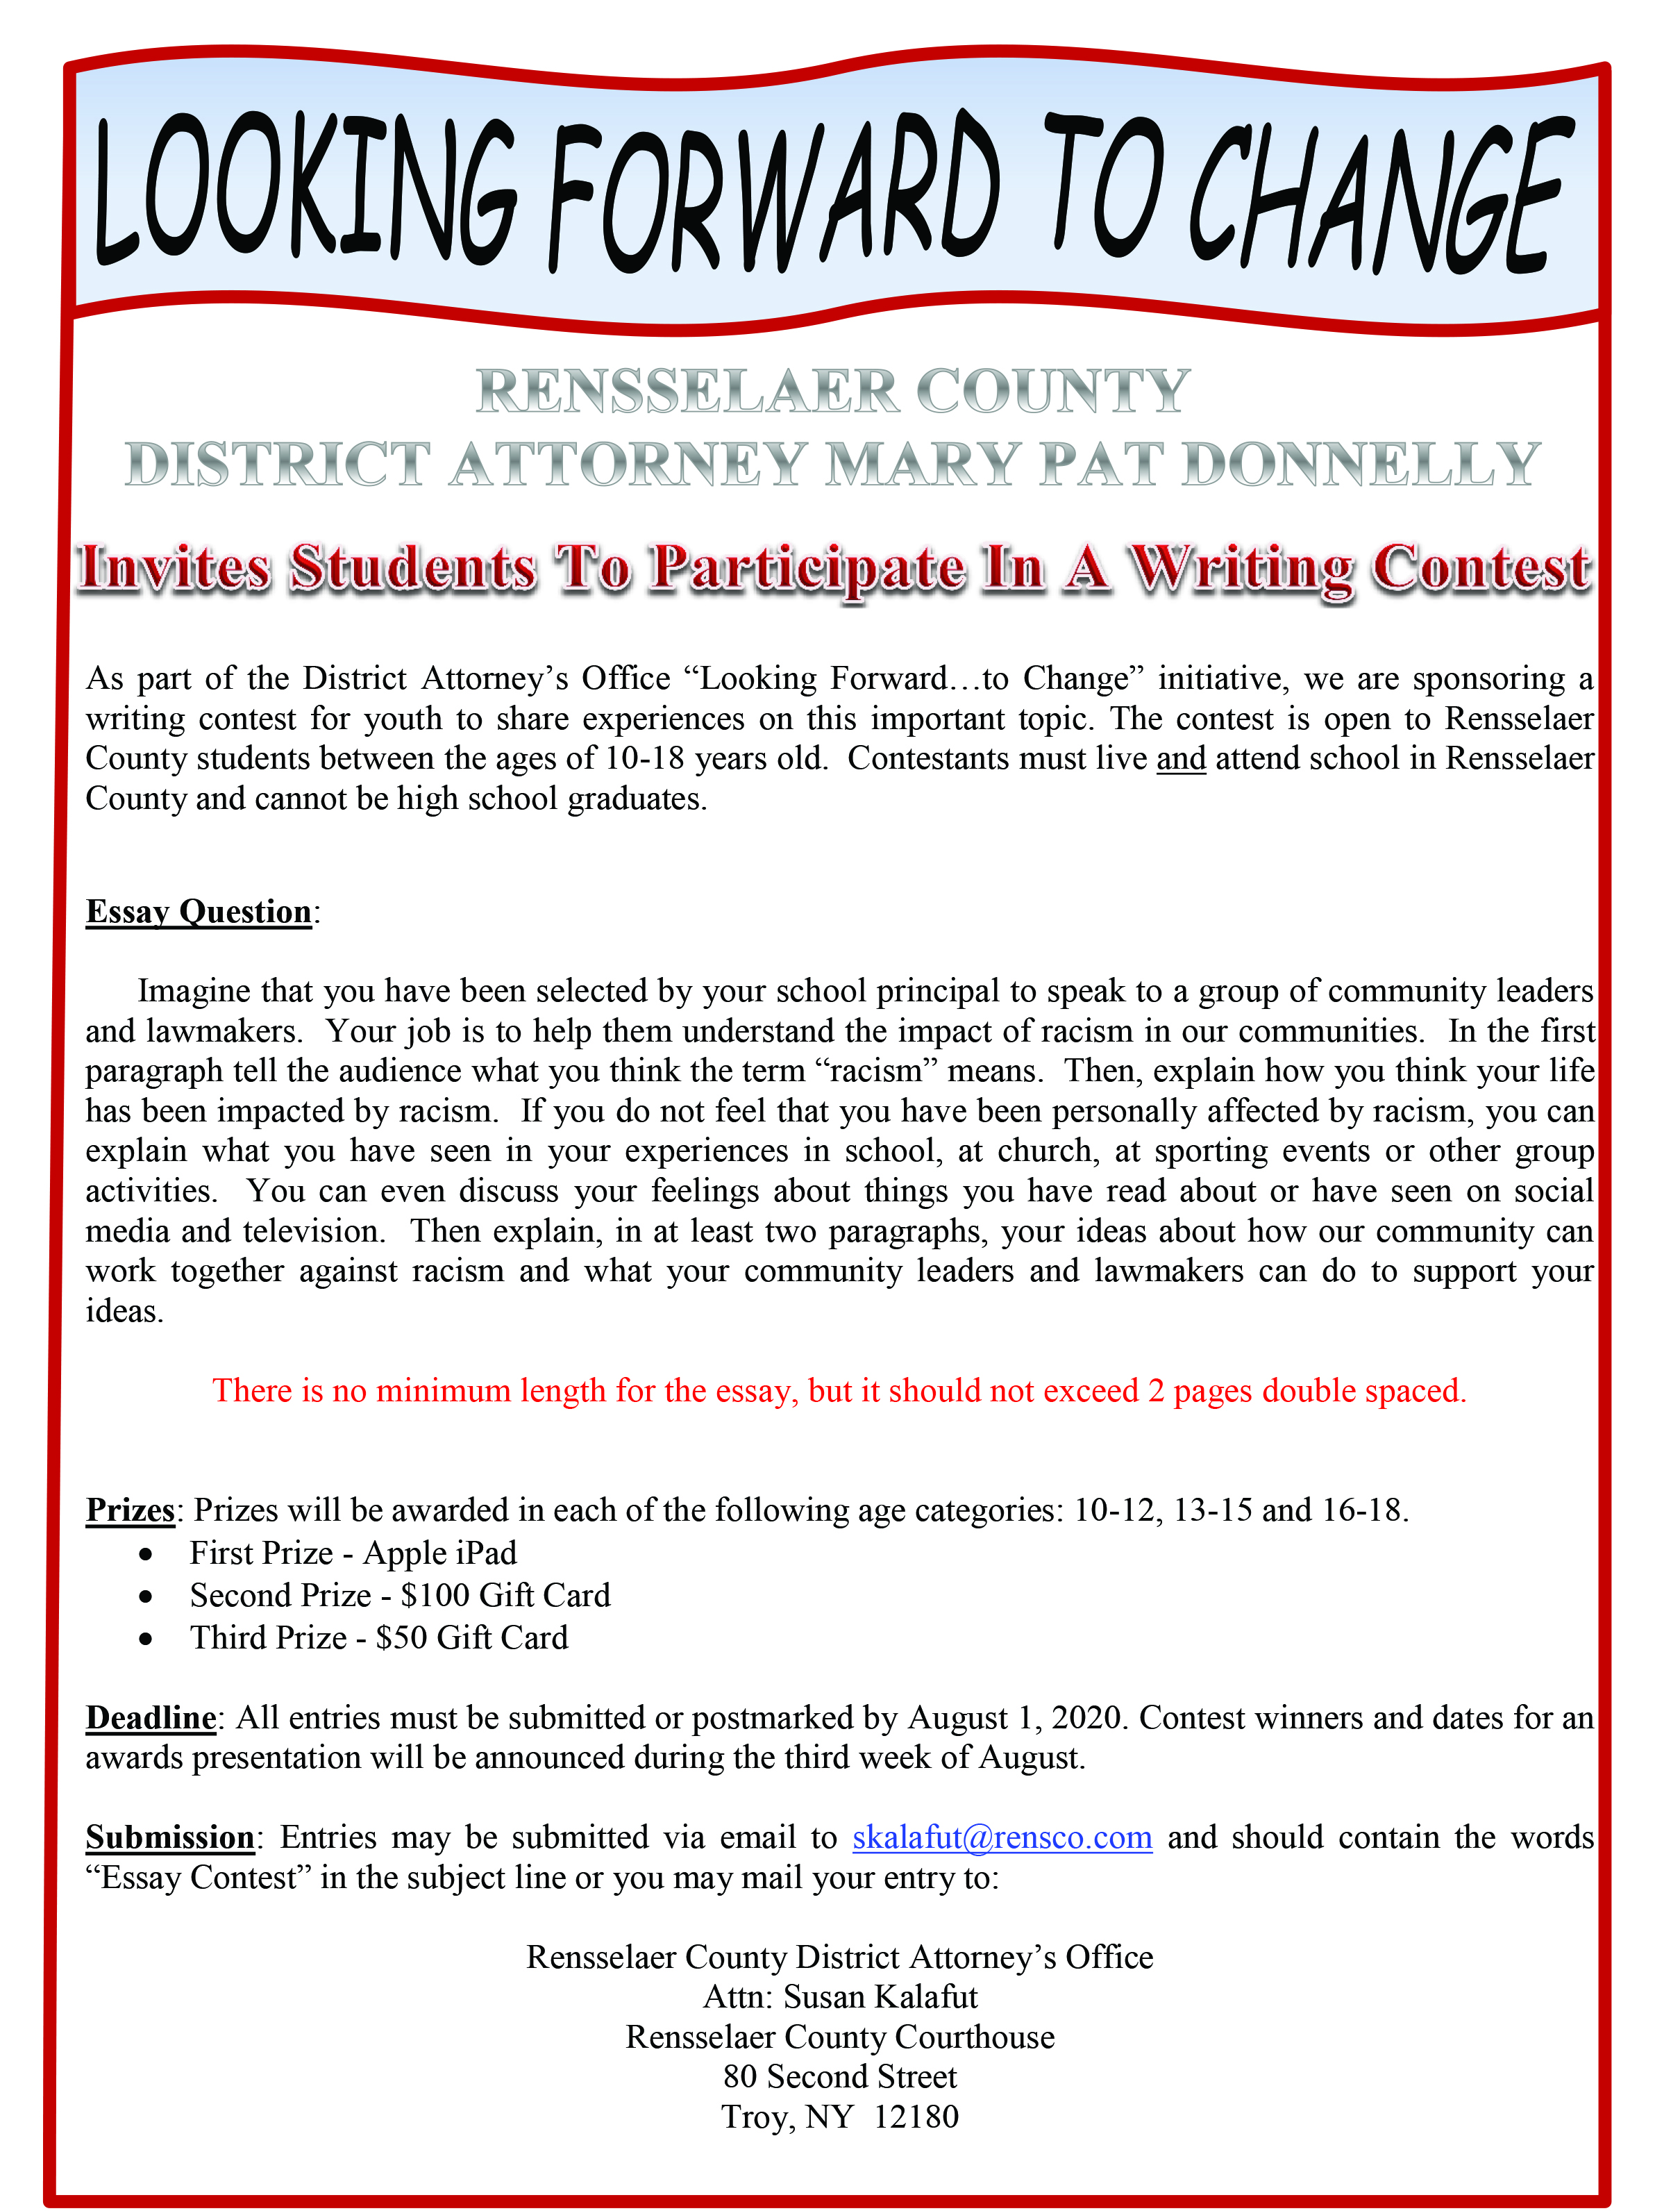 Rensselaer County DA Invites Students to Participate in Writing Contest